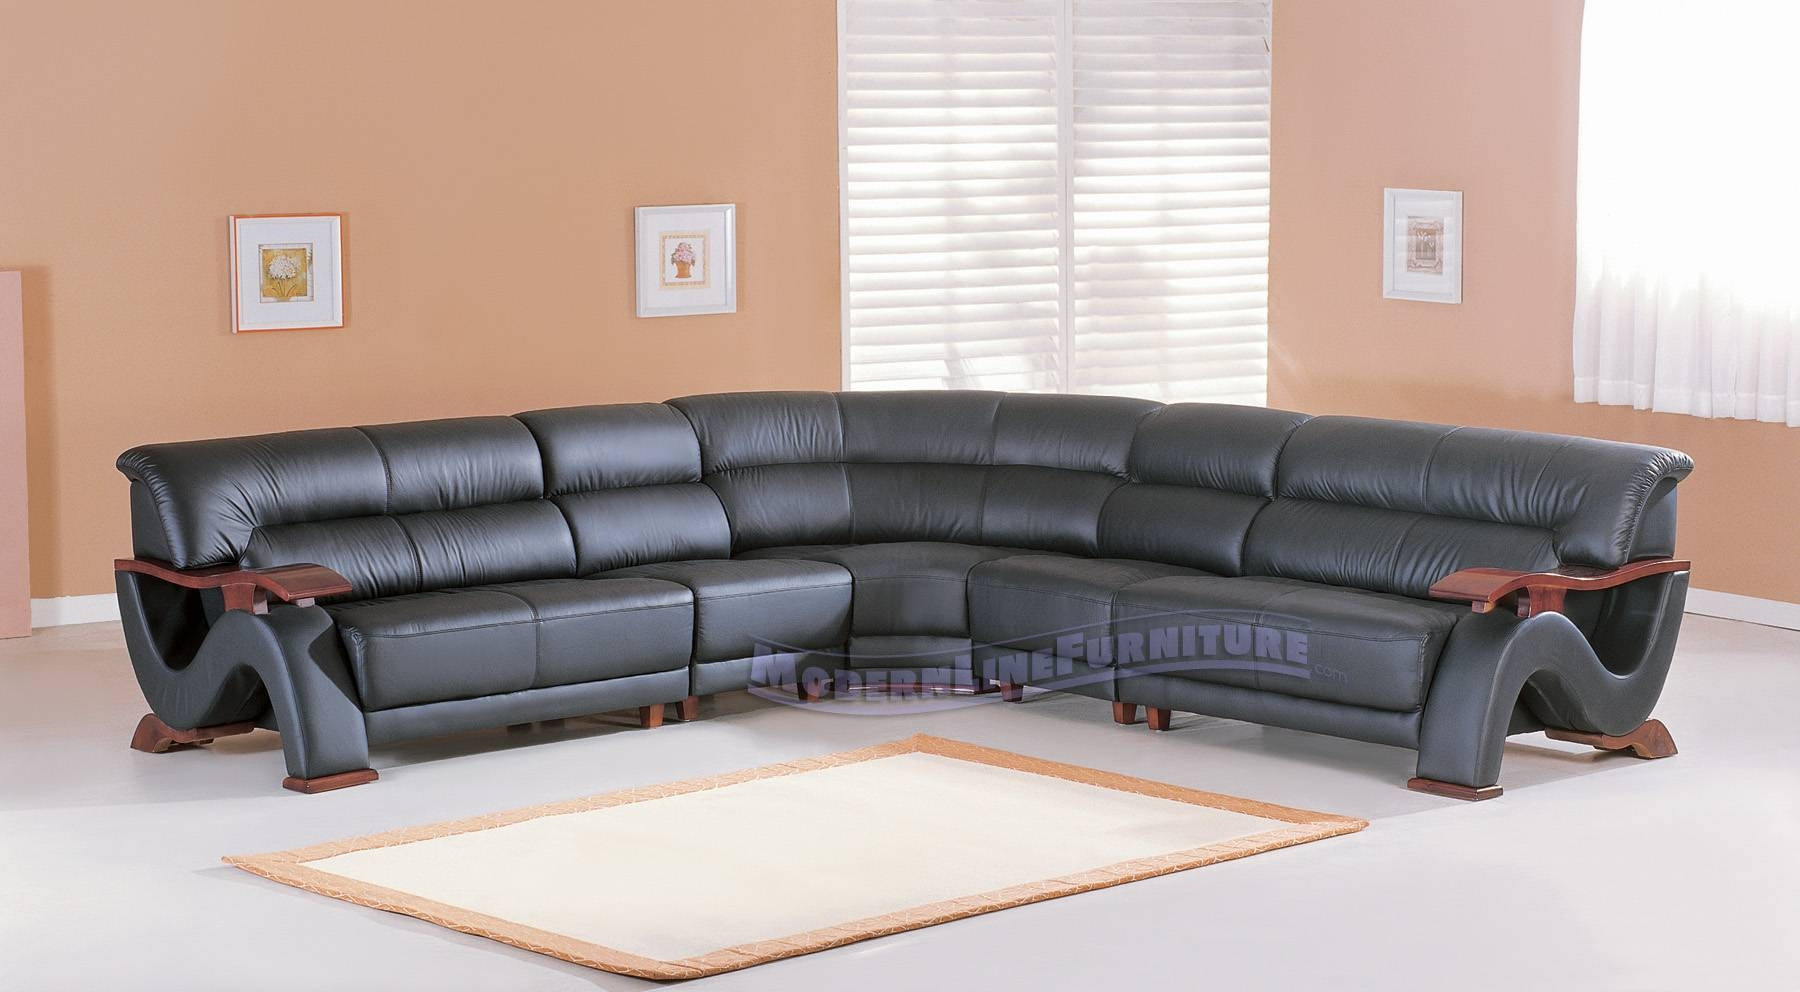 Modern Line Furniture - Commercial Furniture - Custom Made pertaining to Contemporary Black Leather Sofas (Image 19 of 30)